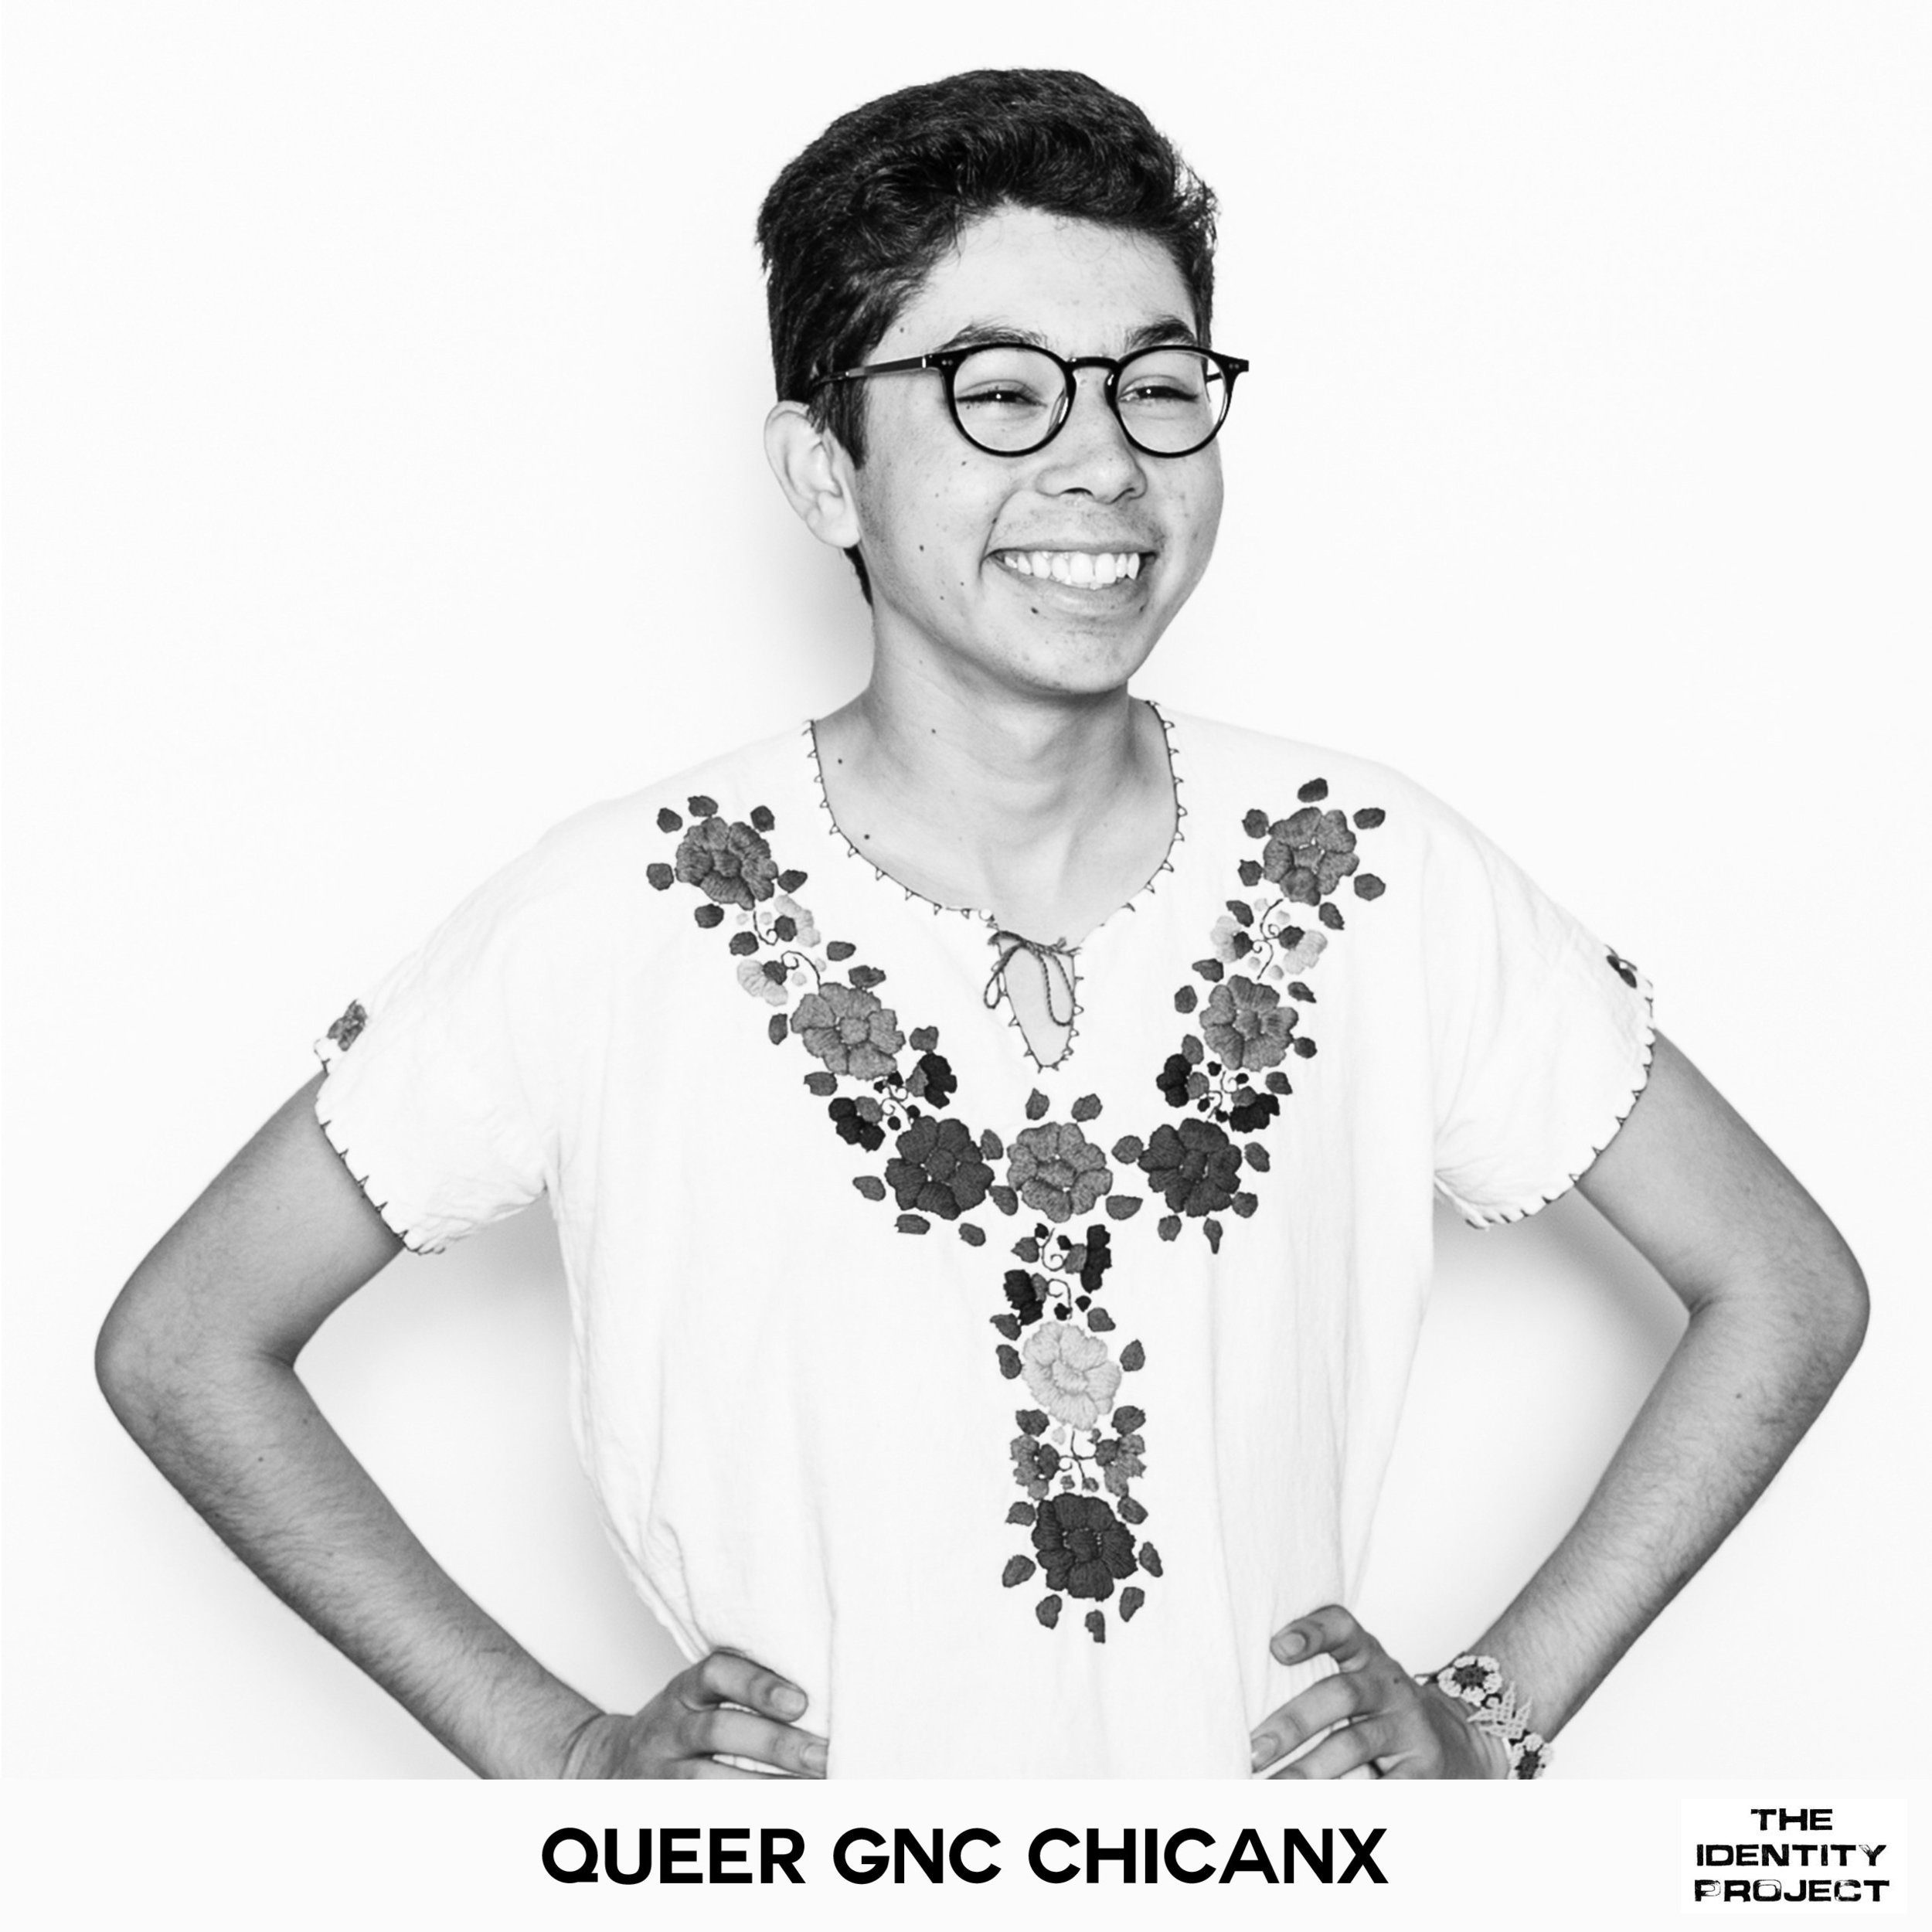 Queer_GNC_Chicanx_Framed.jpg